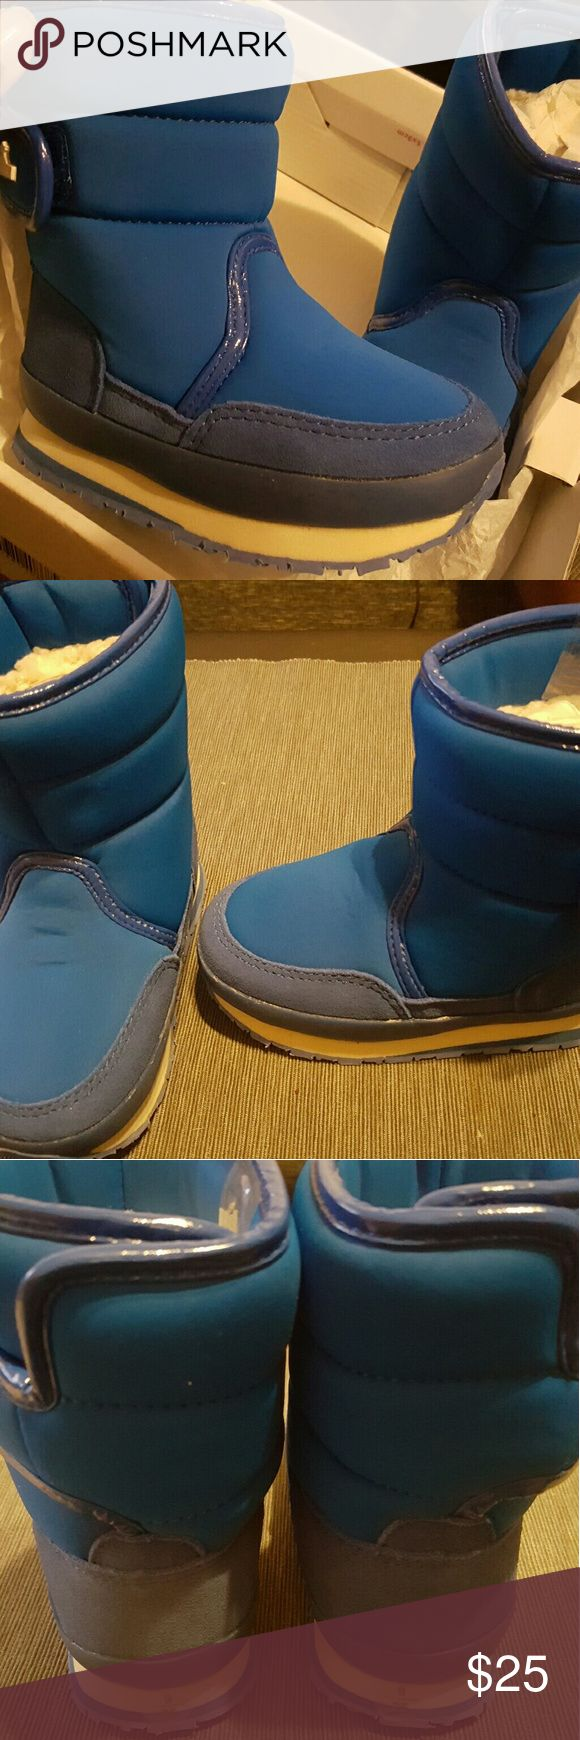 Kid Rubber Duck Brand snow boots New, never worn kid snowjoggers.  Size 9US(25EU). Rubber Duck  Shoes Rain & Snow Boots